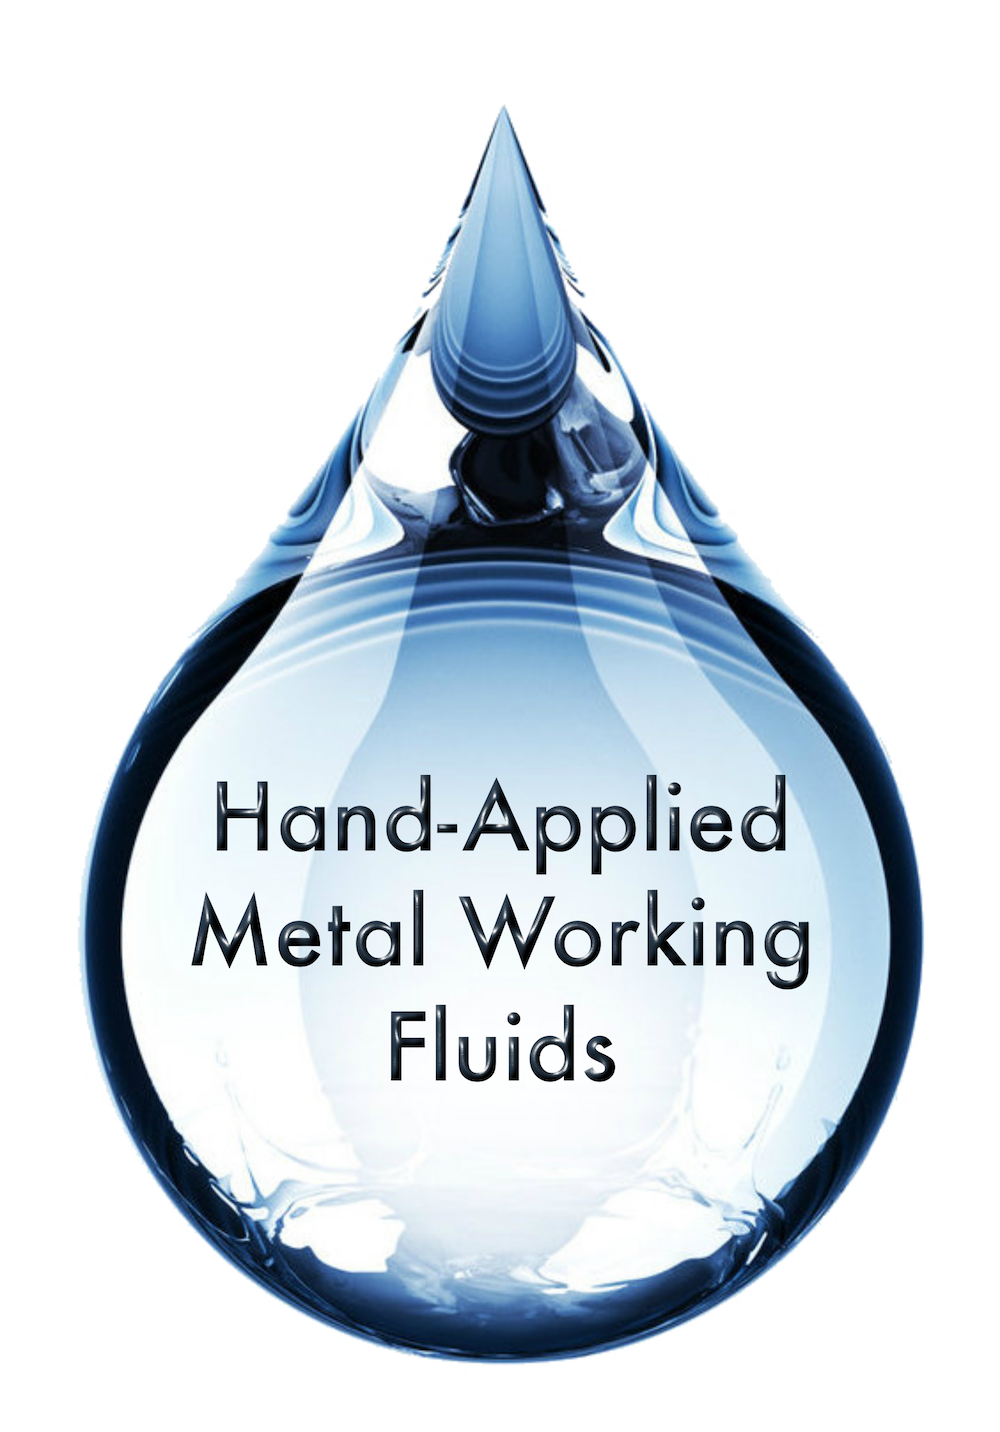 Hand-Applied Metal Working Fluids